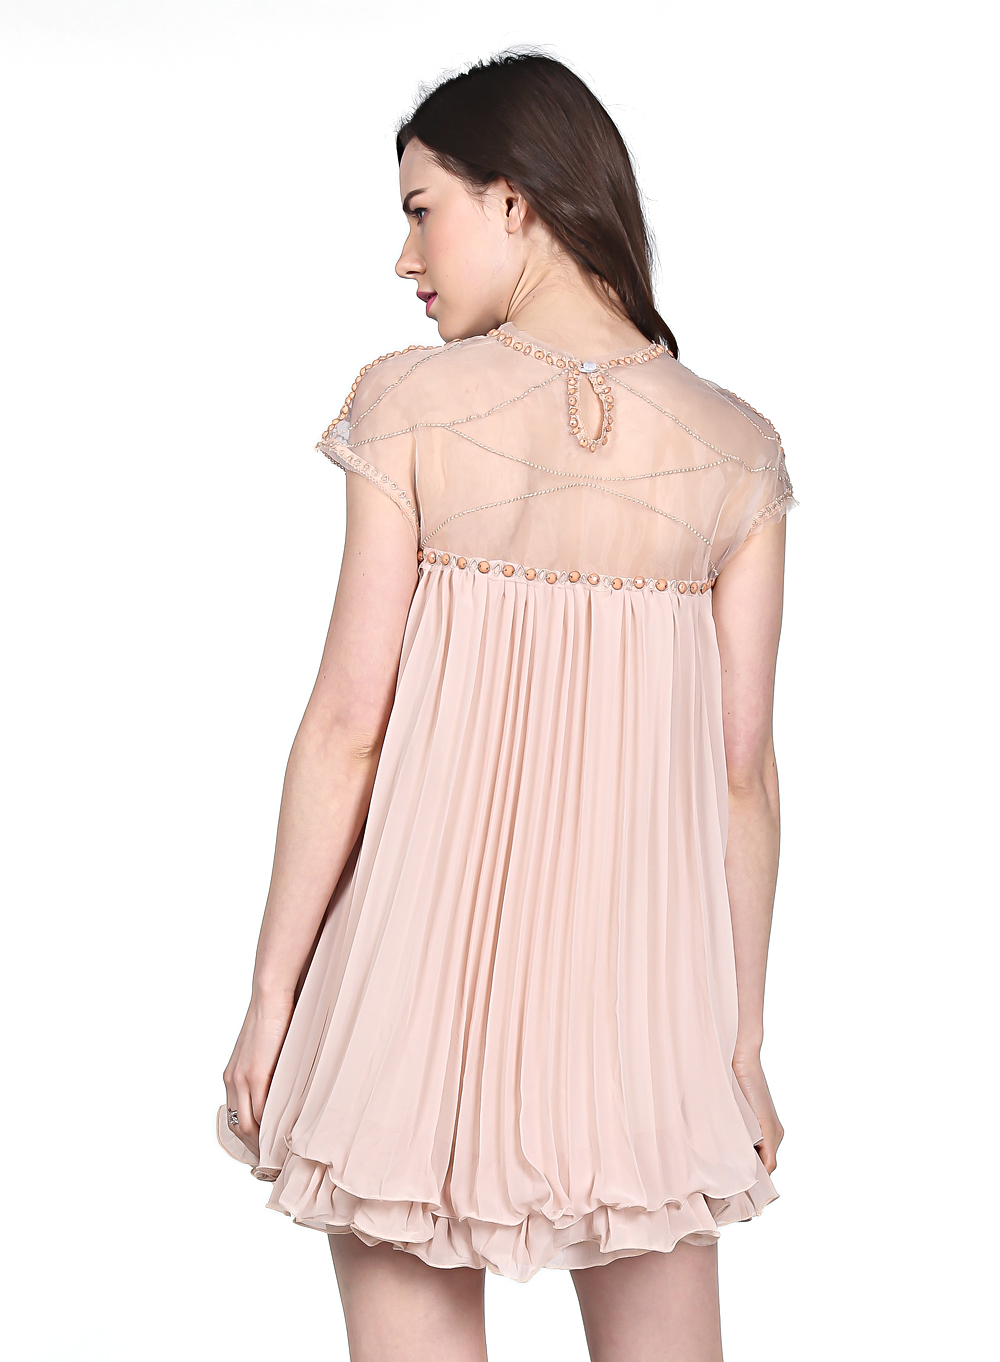 Apricot Short Sleeve Lace Pleated Chiffon Dress - Sheinside.com